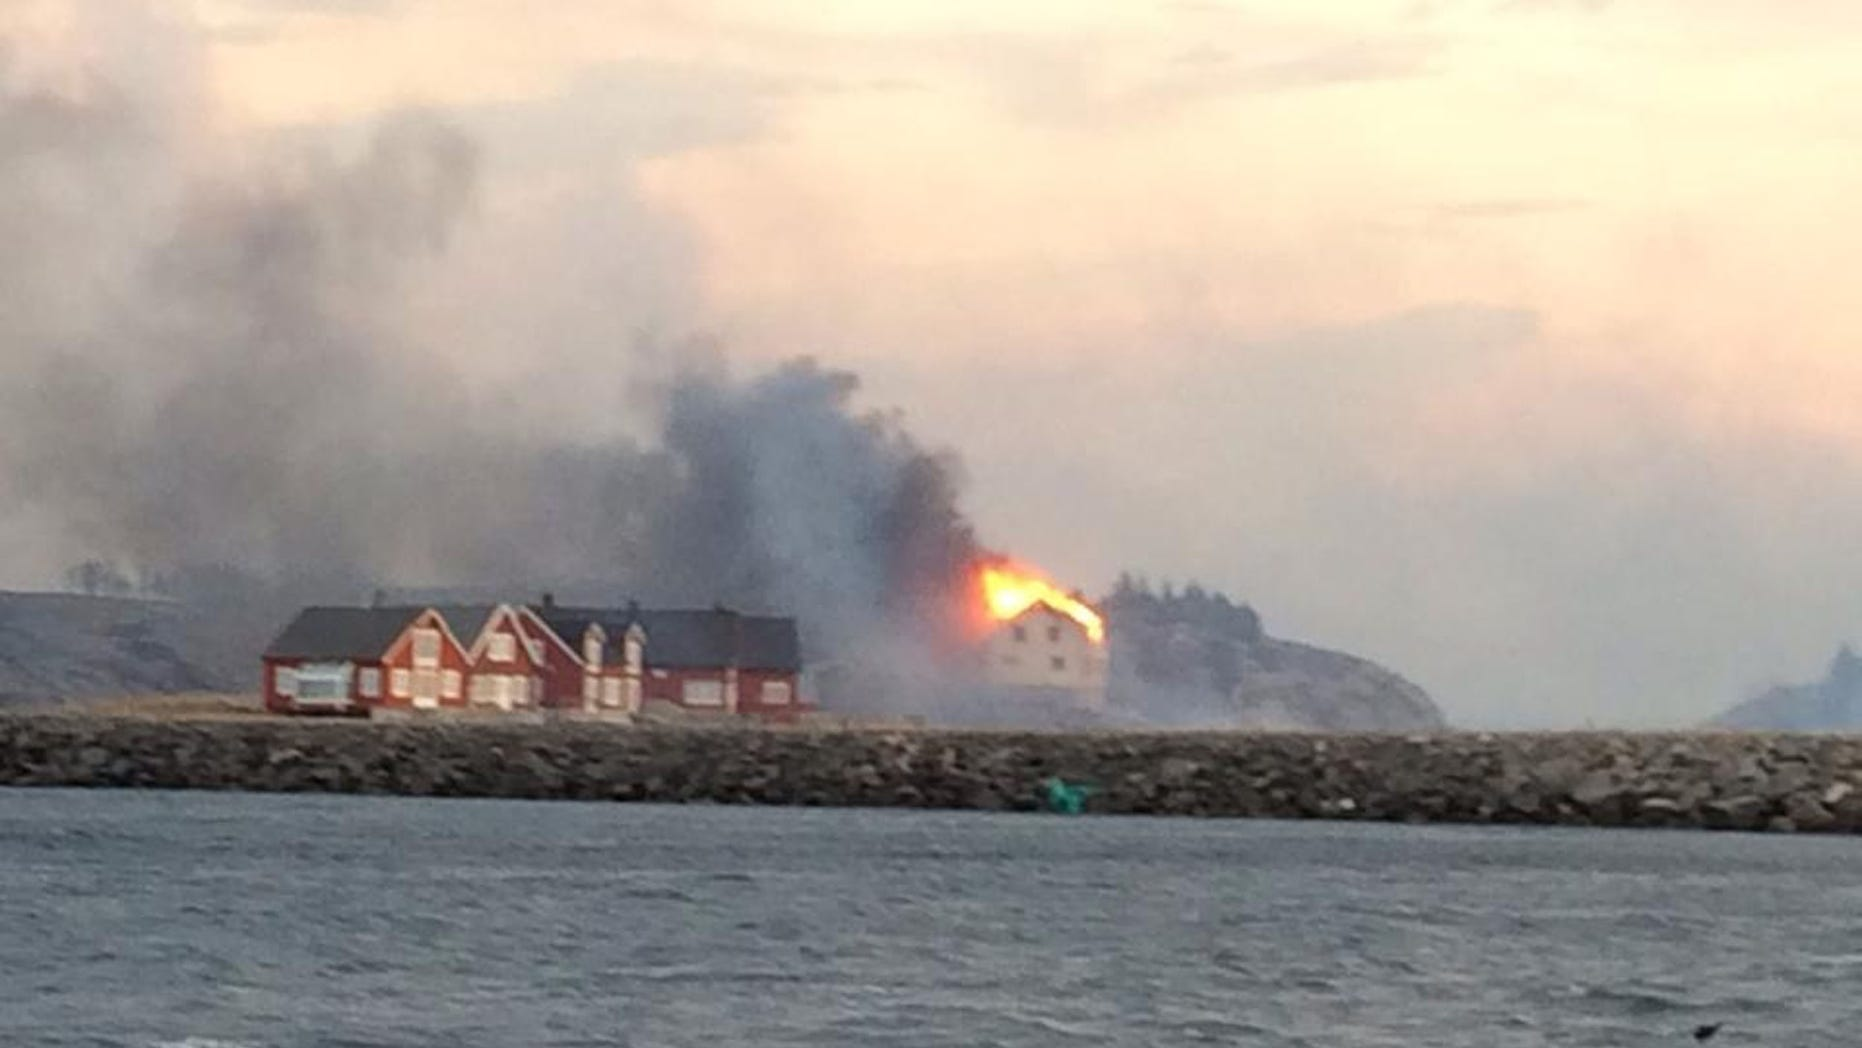 In this image taken from a rescue boat, buildings are seen on fire in Hasvaag, some 240 km north of Trondheim, Norway,  Tuesday, Jan. 28, 2014.  All of Hasvaag's 50-70 buildings have reportedly burned down. There have been no injuries, but all of the twenty people present have been evacuated. Many of the buildings are summer houses and cabins.  (AP Photo/NTB Scanpix, Redningsskoyta Harald V) NORWAY OUT